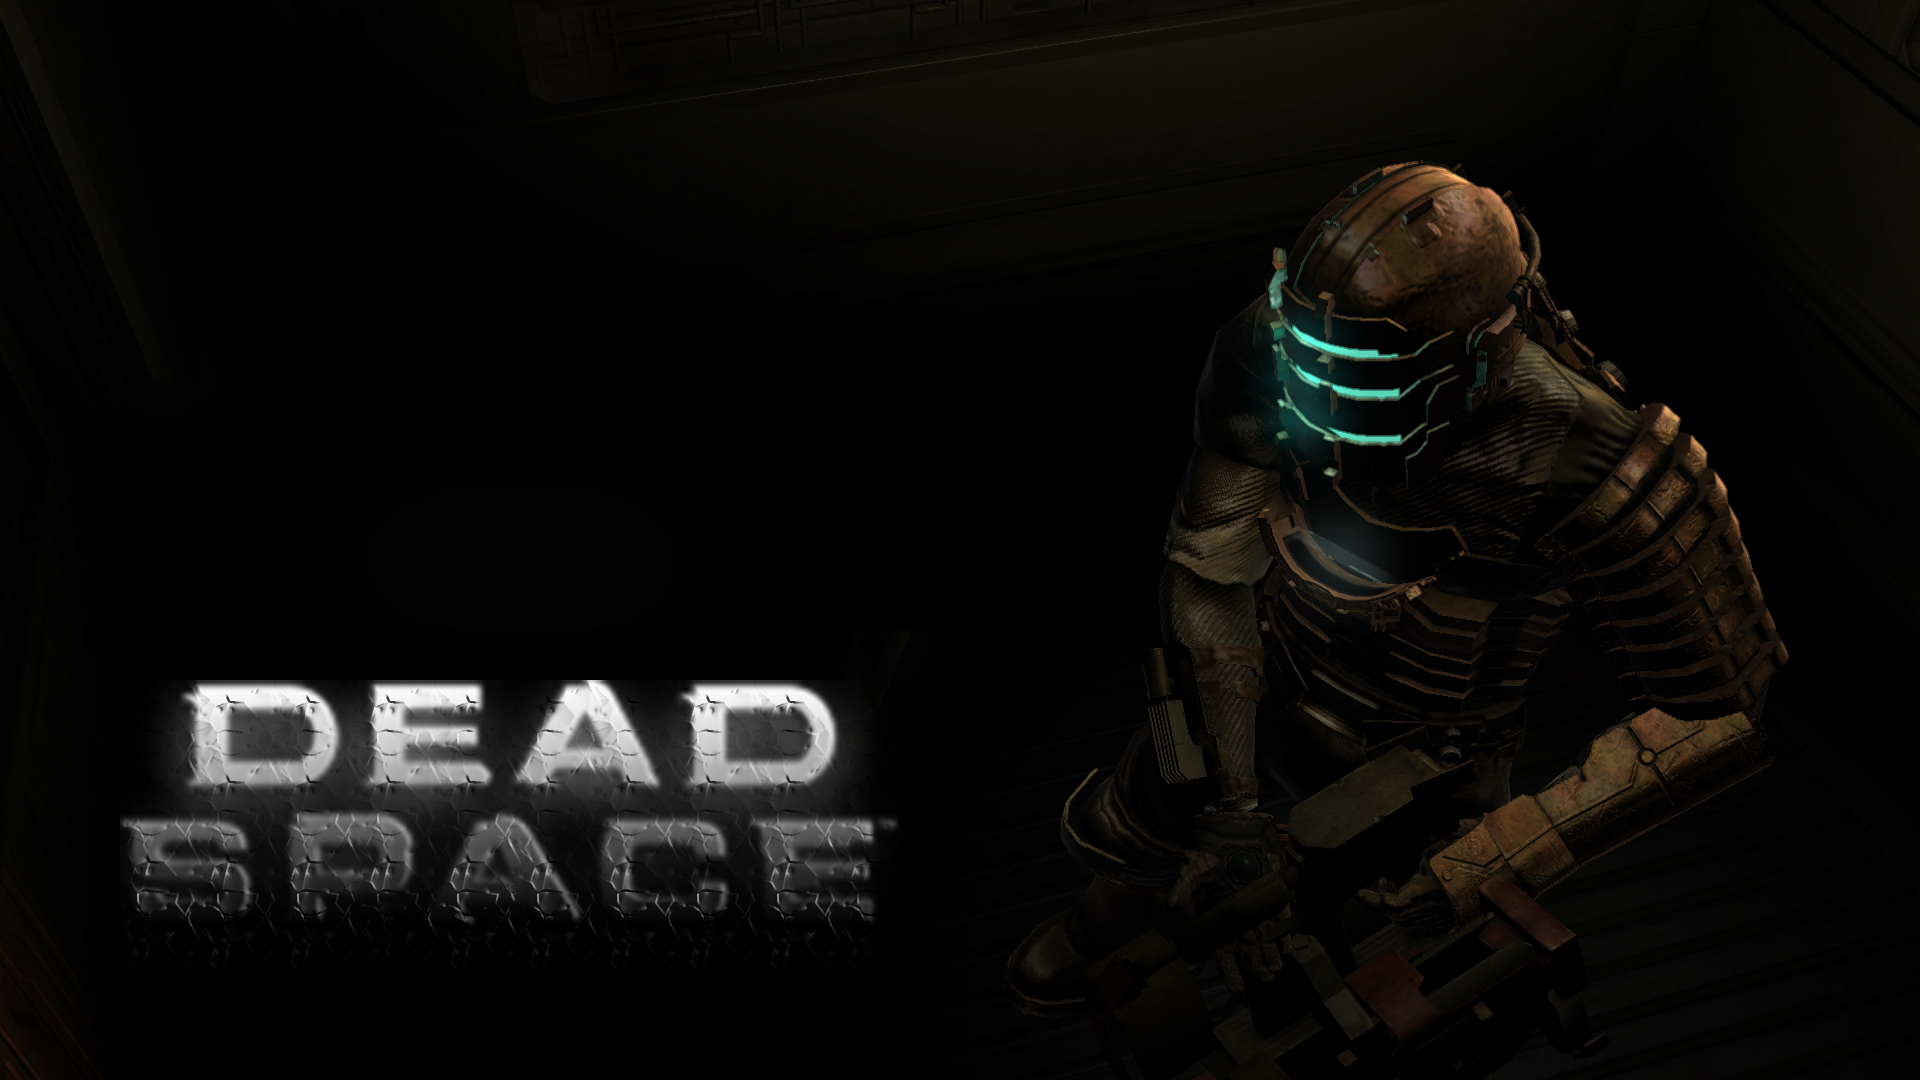 dead space 3 wallpapers 29467